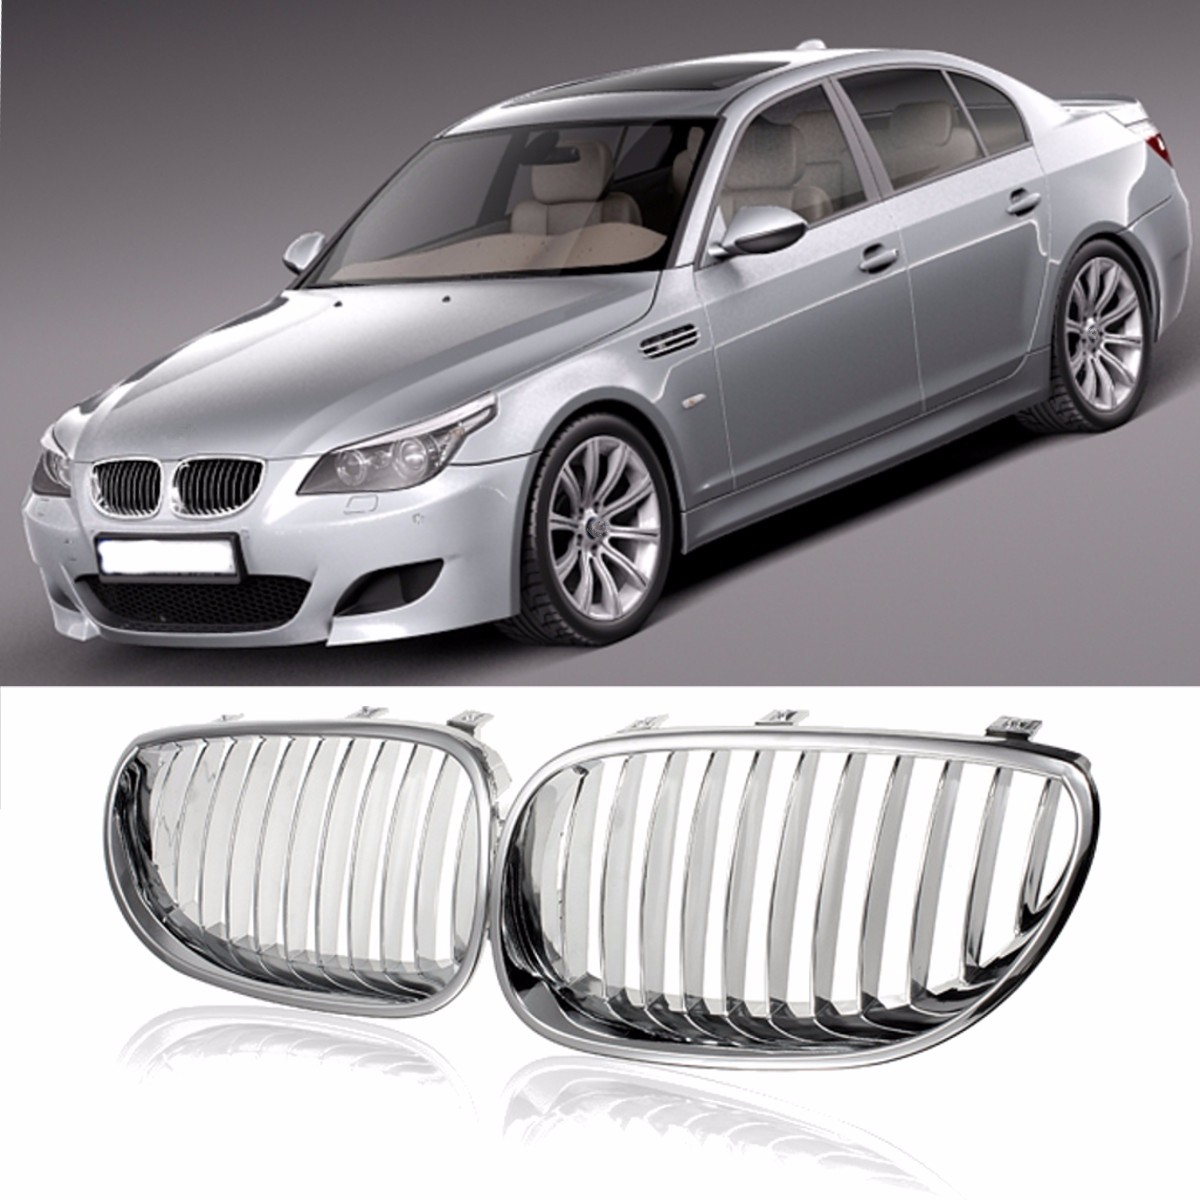 for BMW E60 E61 M5 2003 2004 2005 2006 2007 2008 2009 Chrome Silver Car Auto Front Wide Kidney Hood Grill Grille батут z sports r 1266 40 inch